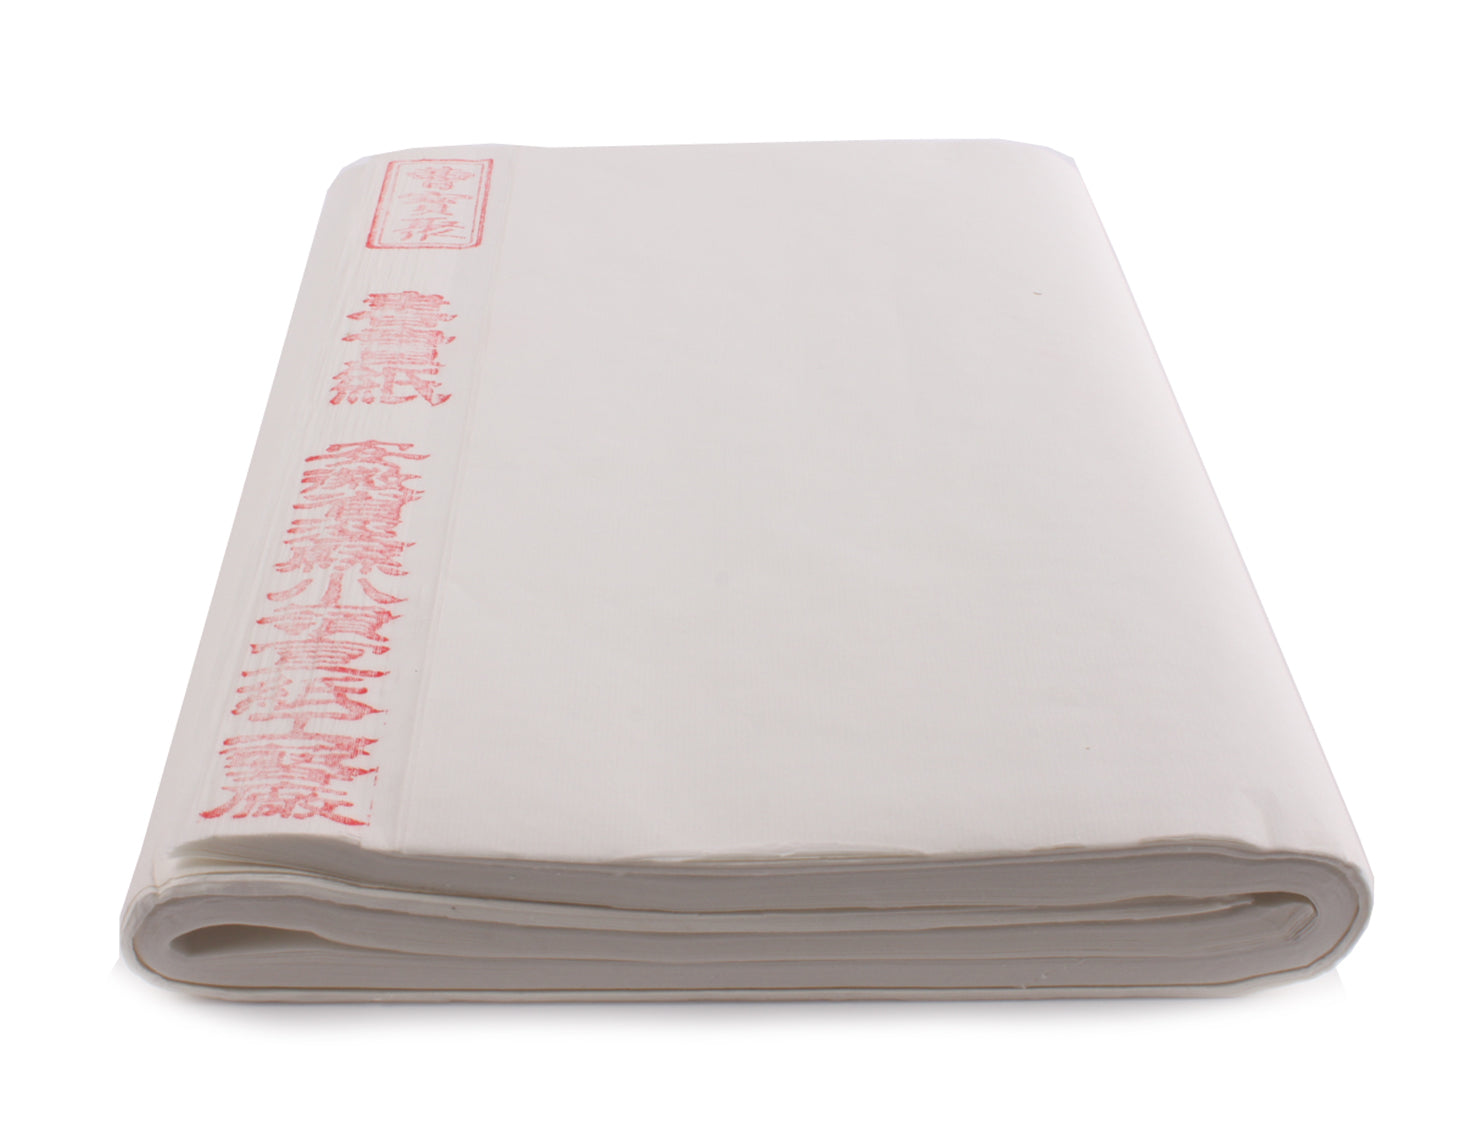 Anhui-made sized Chinese shuen or rice paper folded in a batch of hundred individual sheets with two folds - used for sumi painting or writing shodo calligraphy